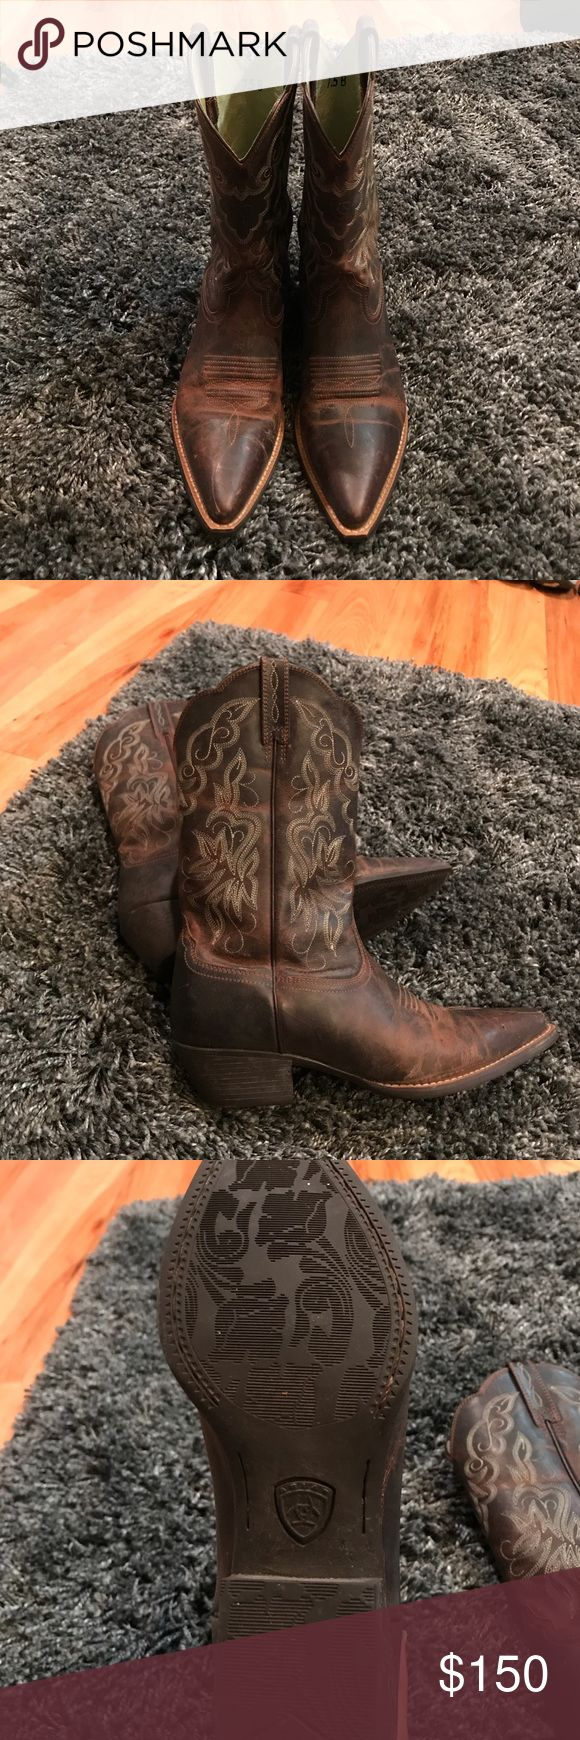 Ariat Western Cowboy Boots Women's heritage J toe boot in sassy brown, brand new with box, size 7.5 (B width). Ariat Shoes